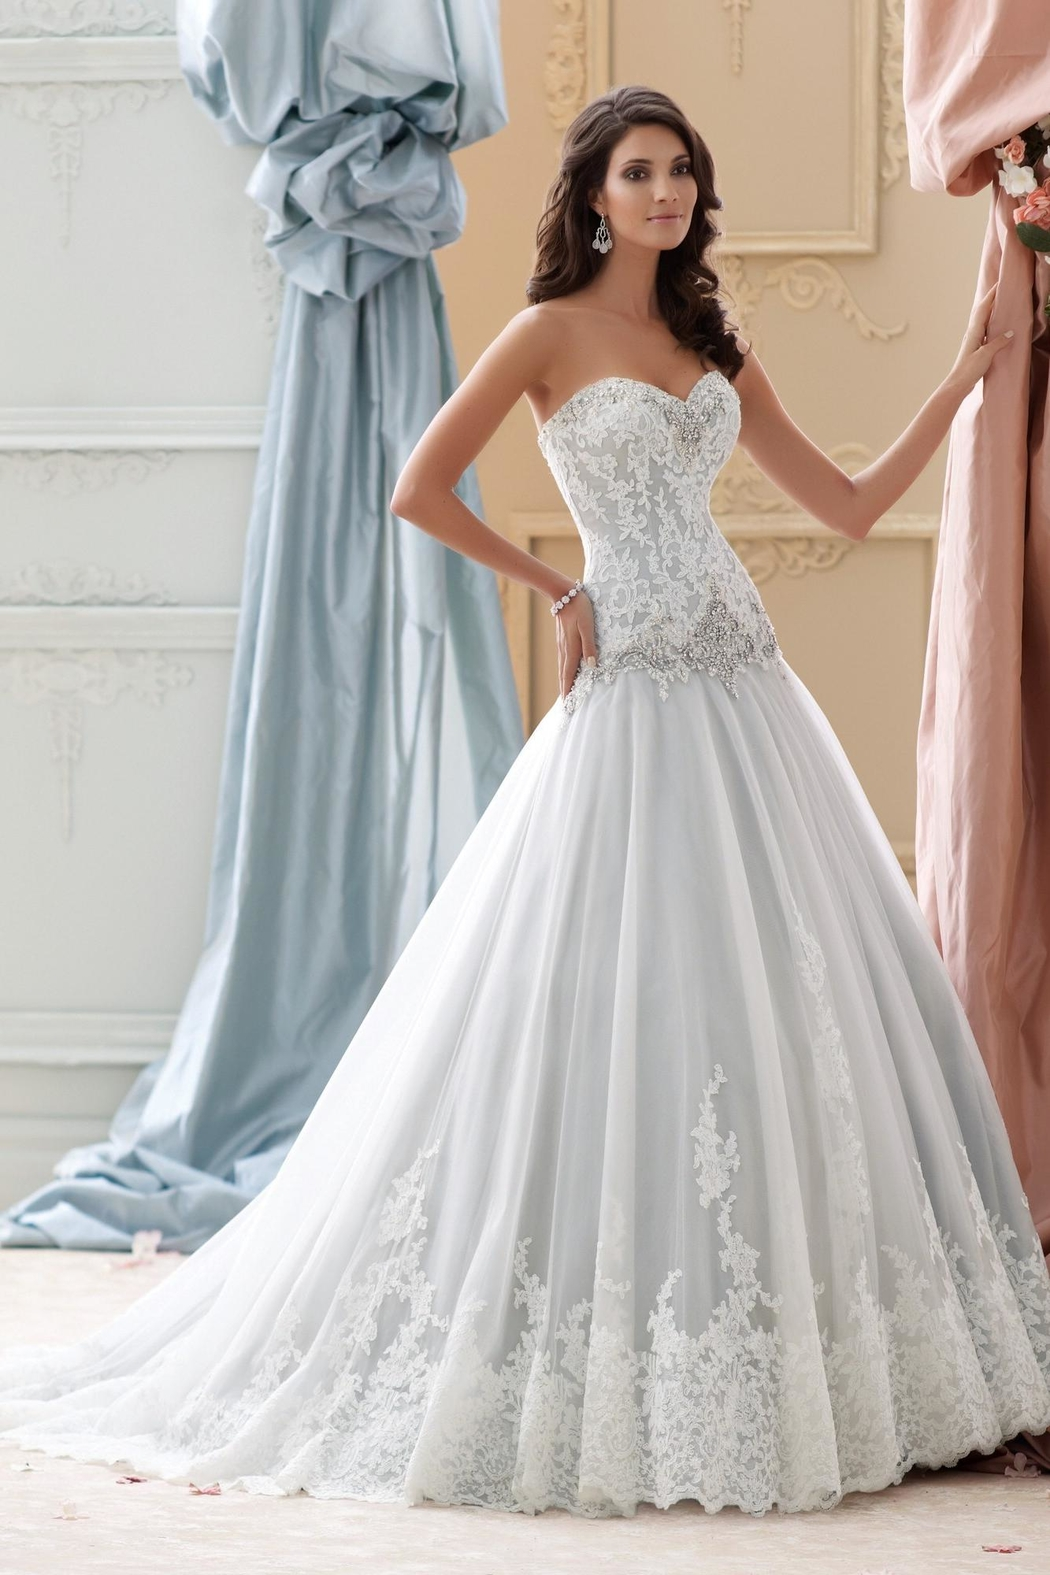 David Tutera for Mon Cheri Lace Tulle Ballgown from Ohio by ...